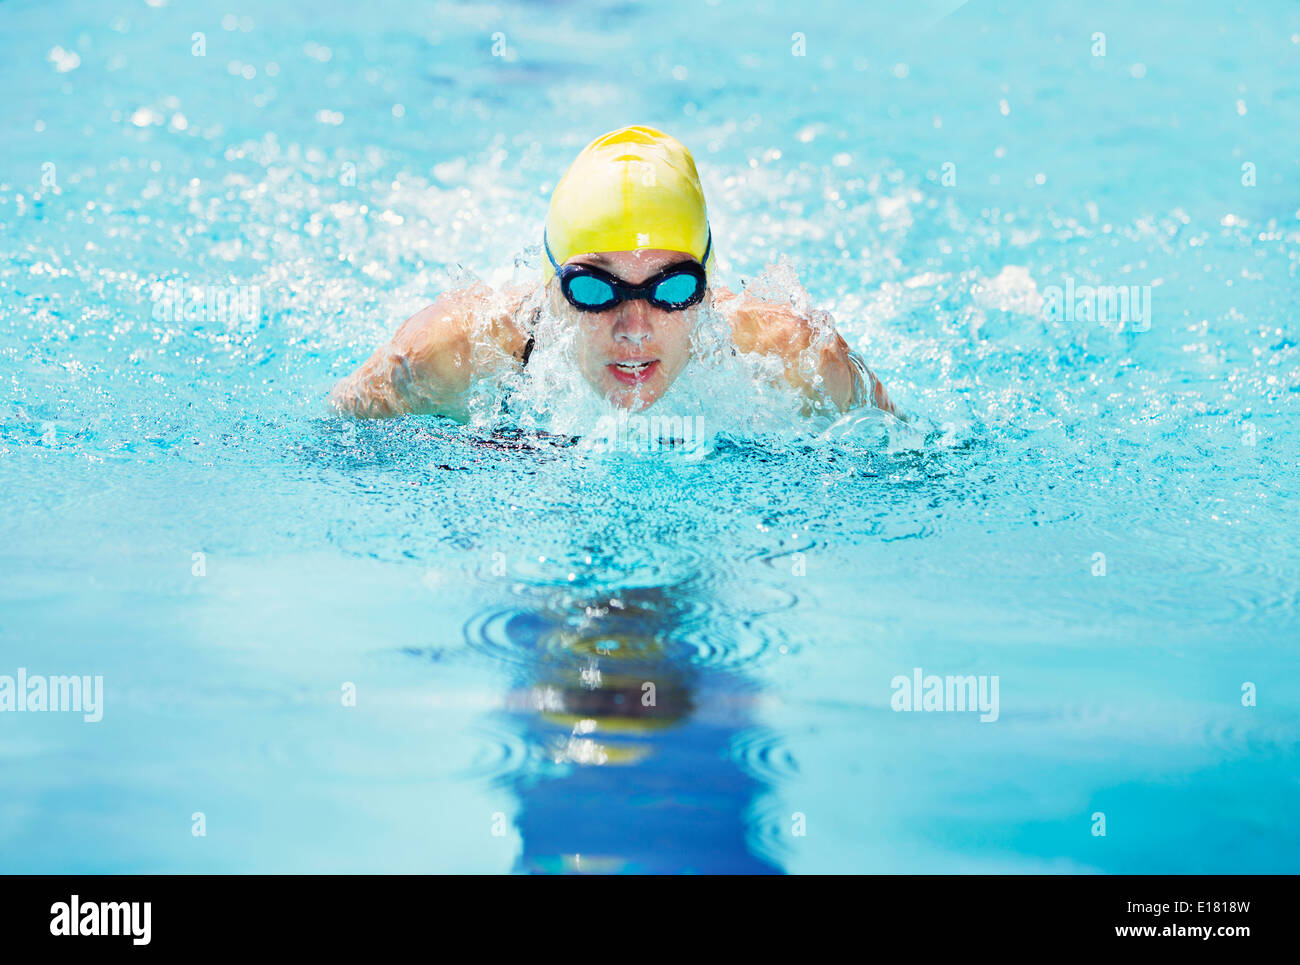 Swimmer wearing goggles in pool - Stock Image